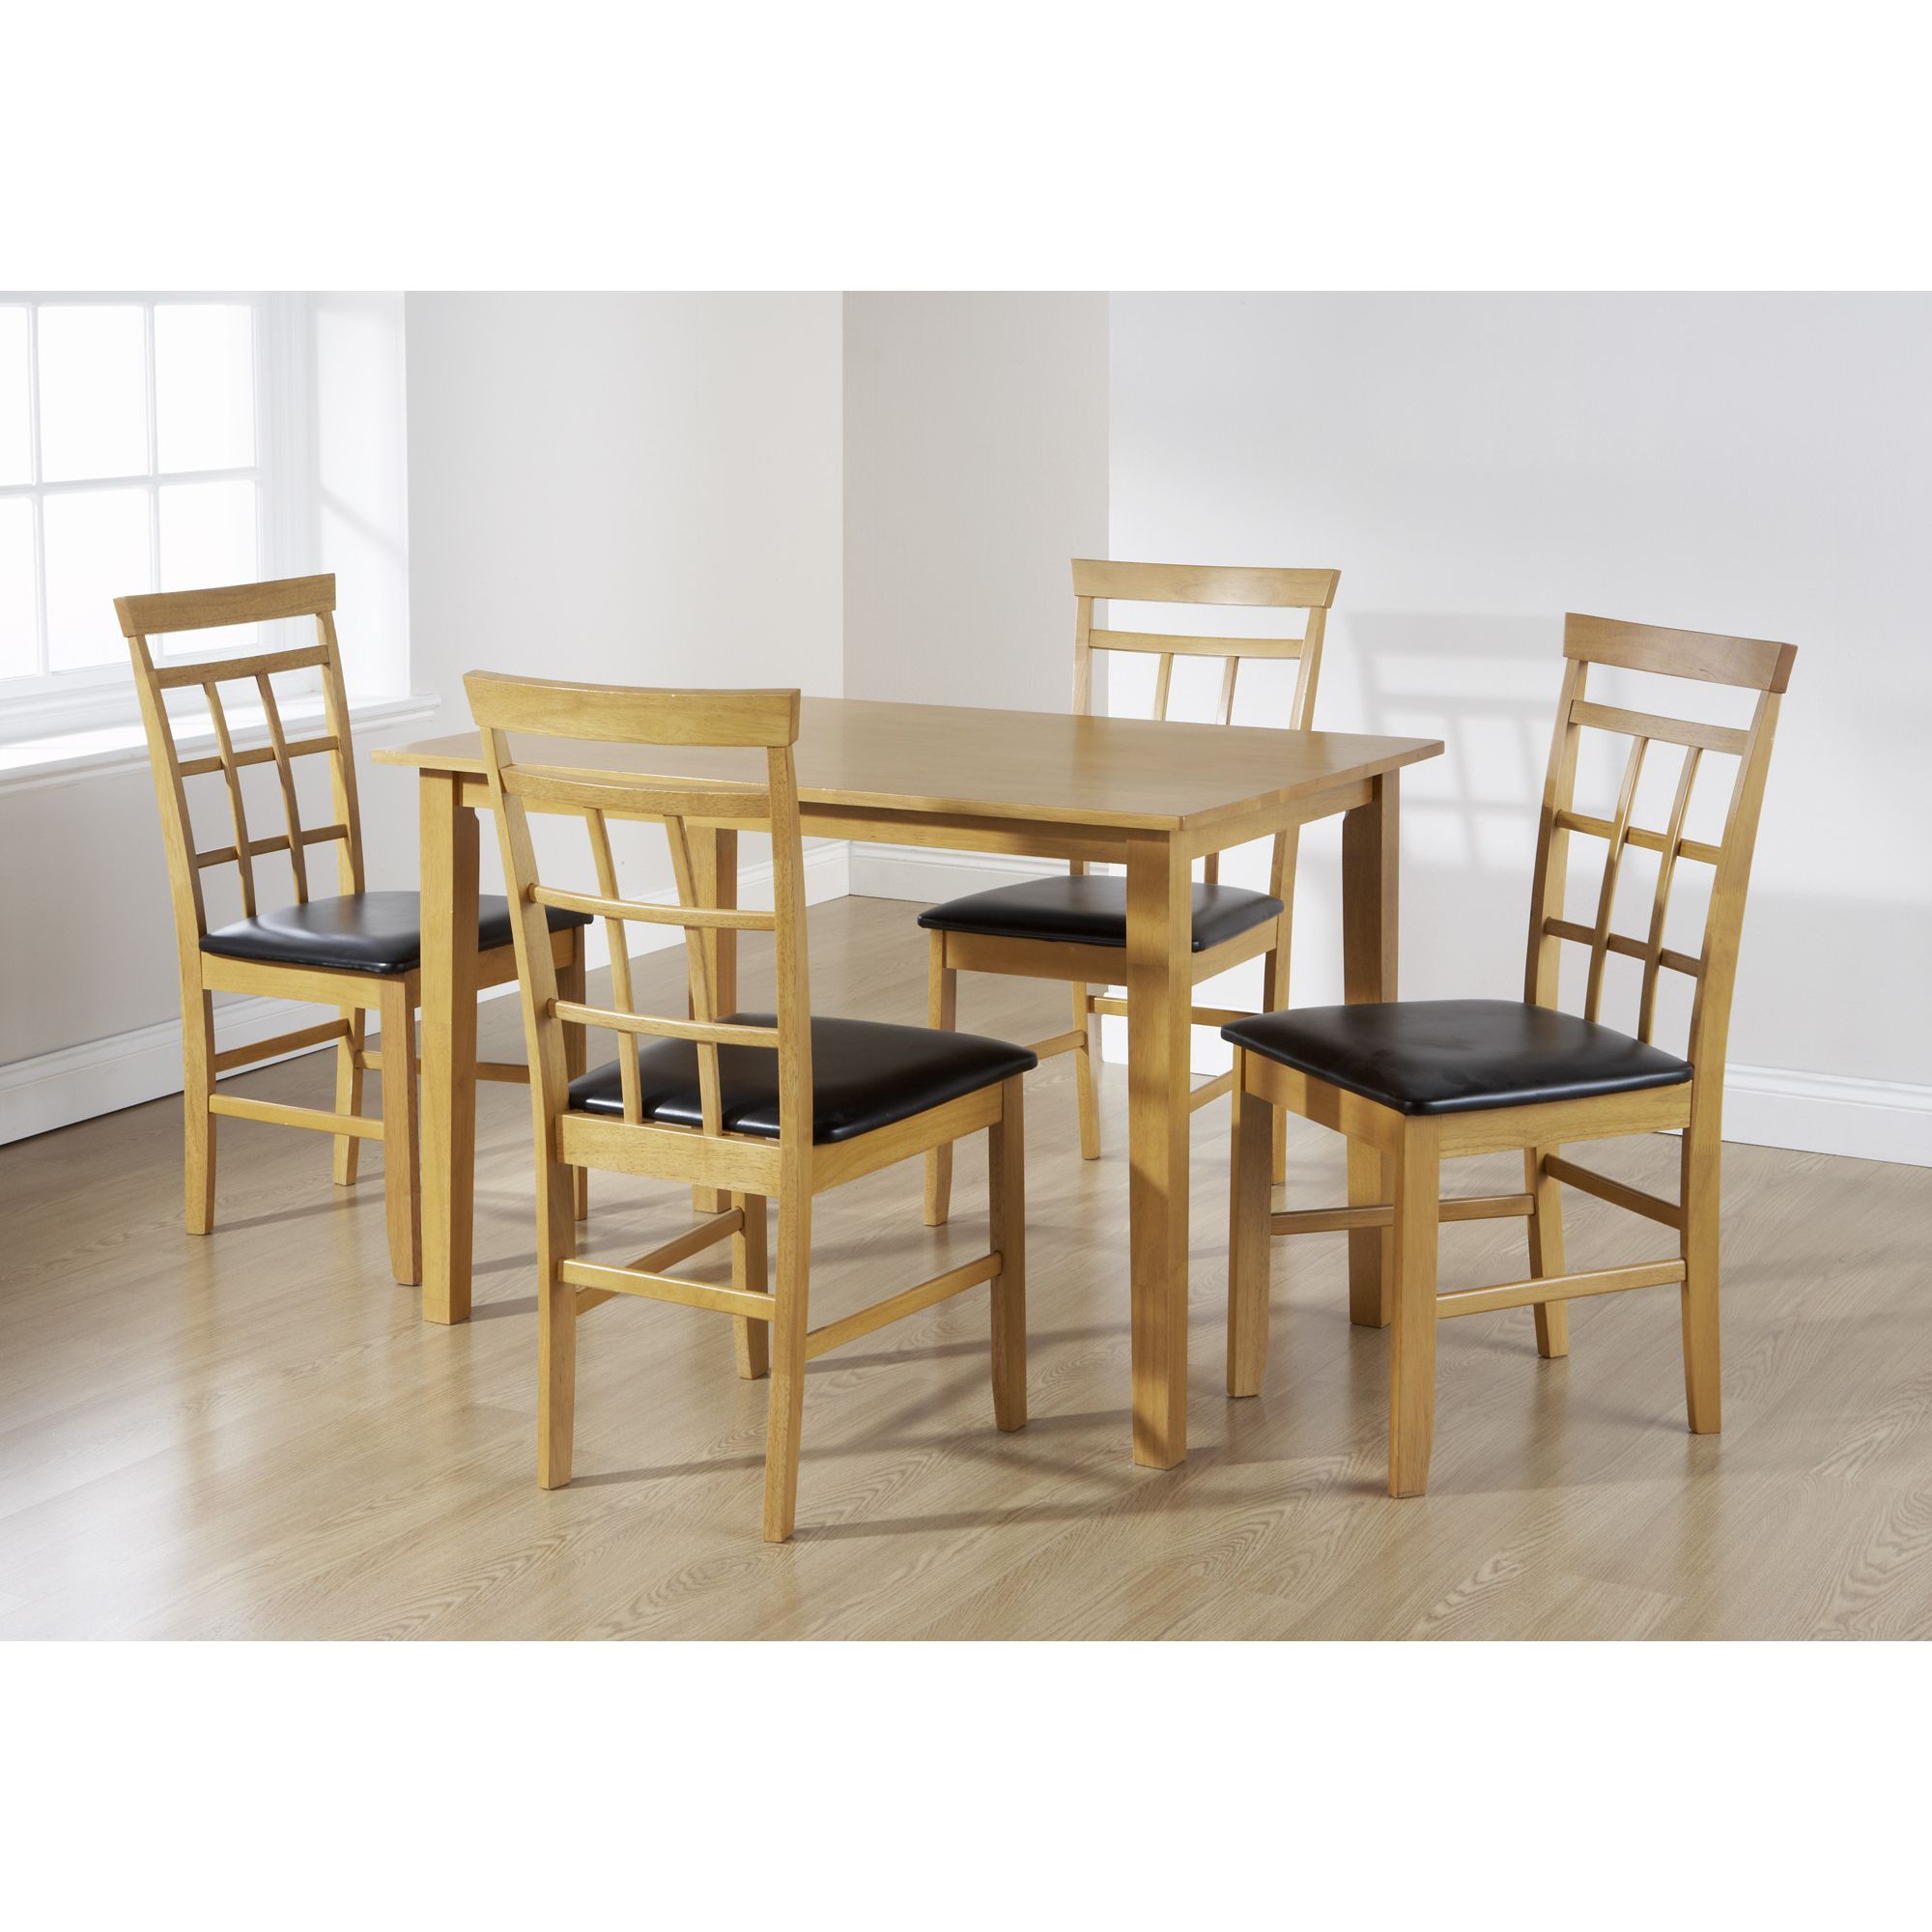 Elements Bude 5 Piece Dining Set - Oak at Tesco Direct